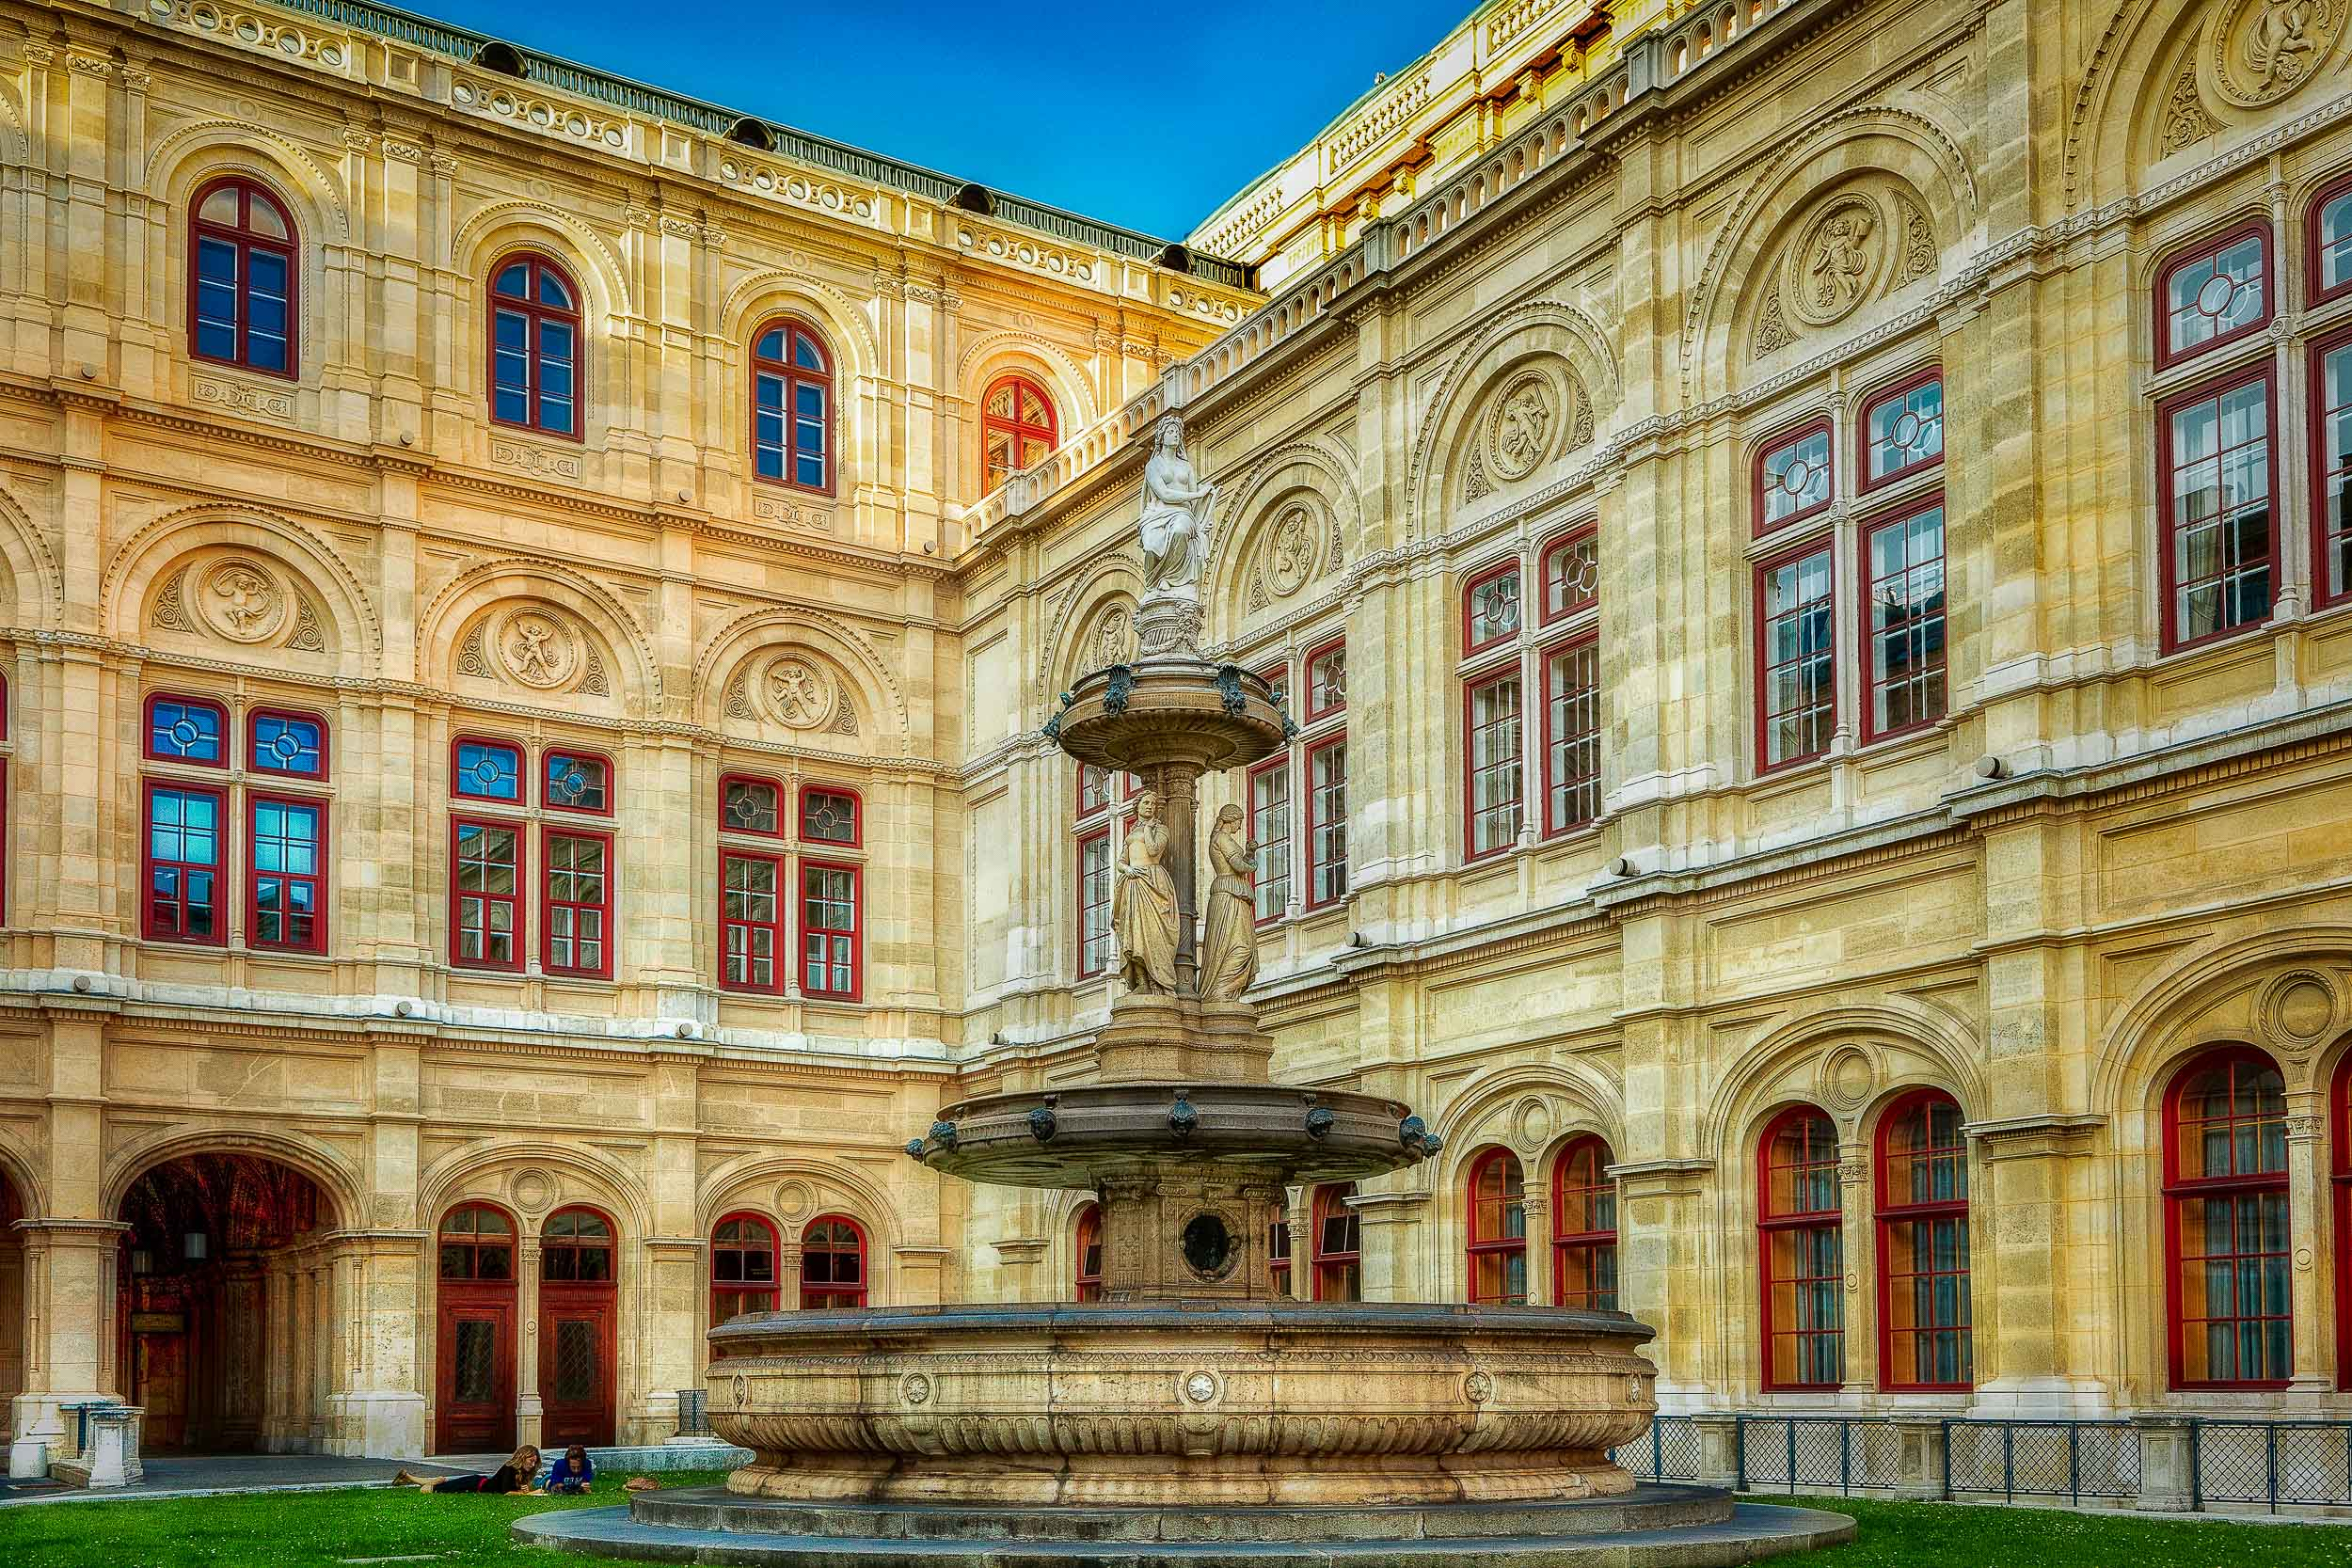 A beautiful    fountain    in the grounds of a city building,    Vienna, Austria